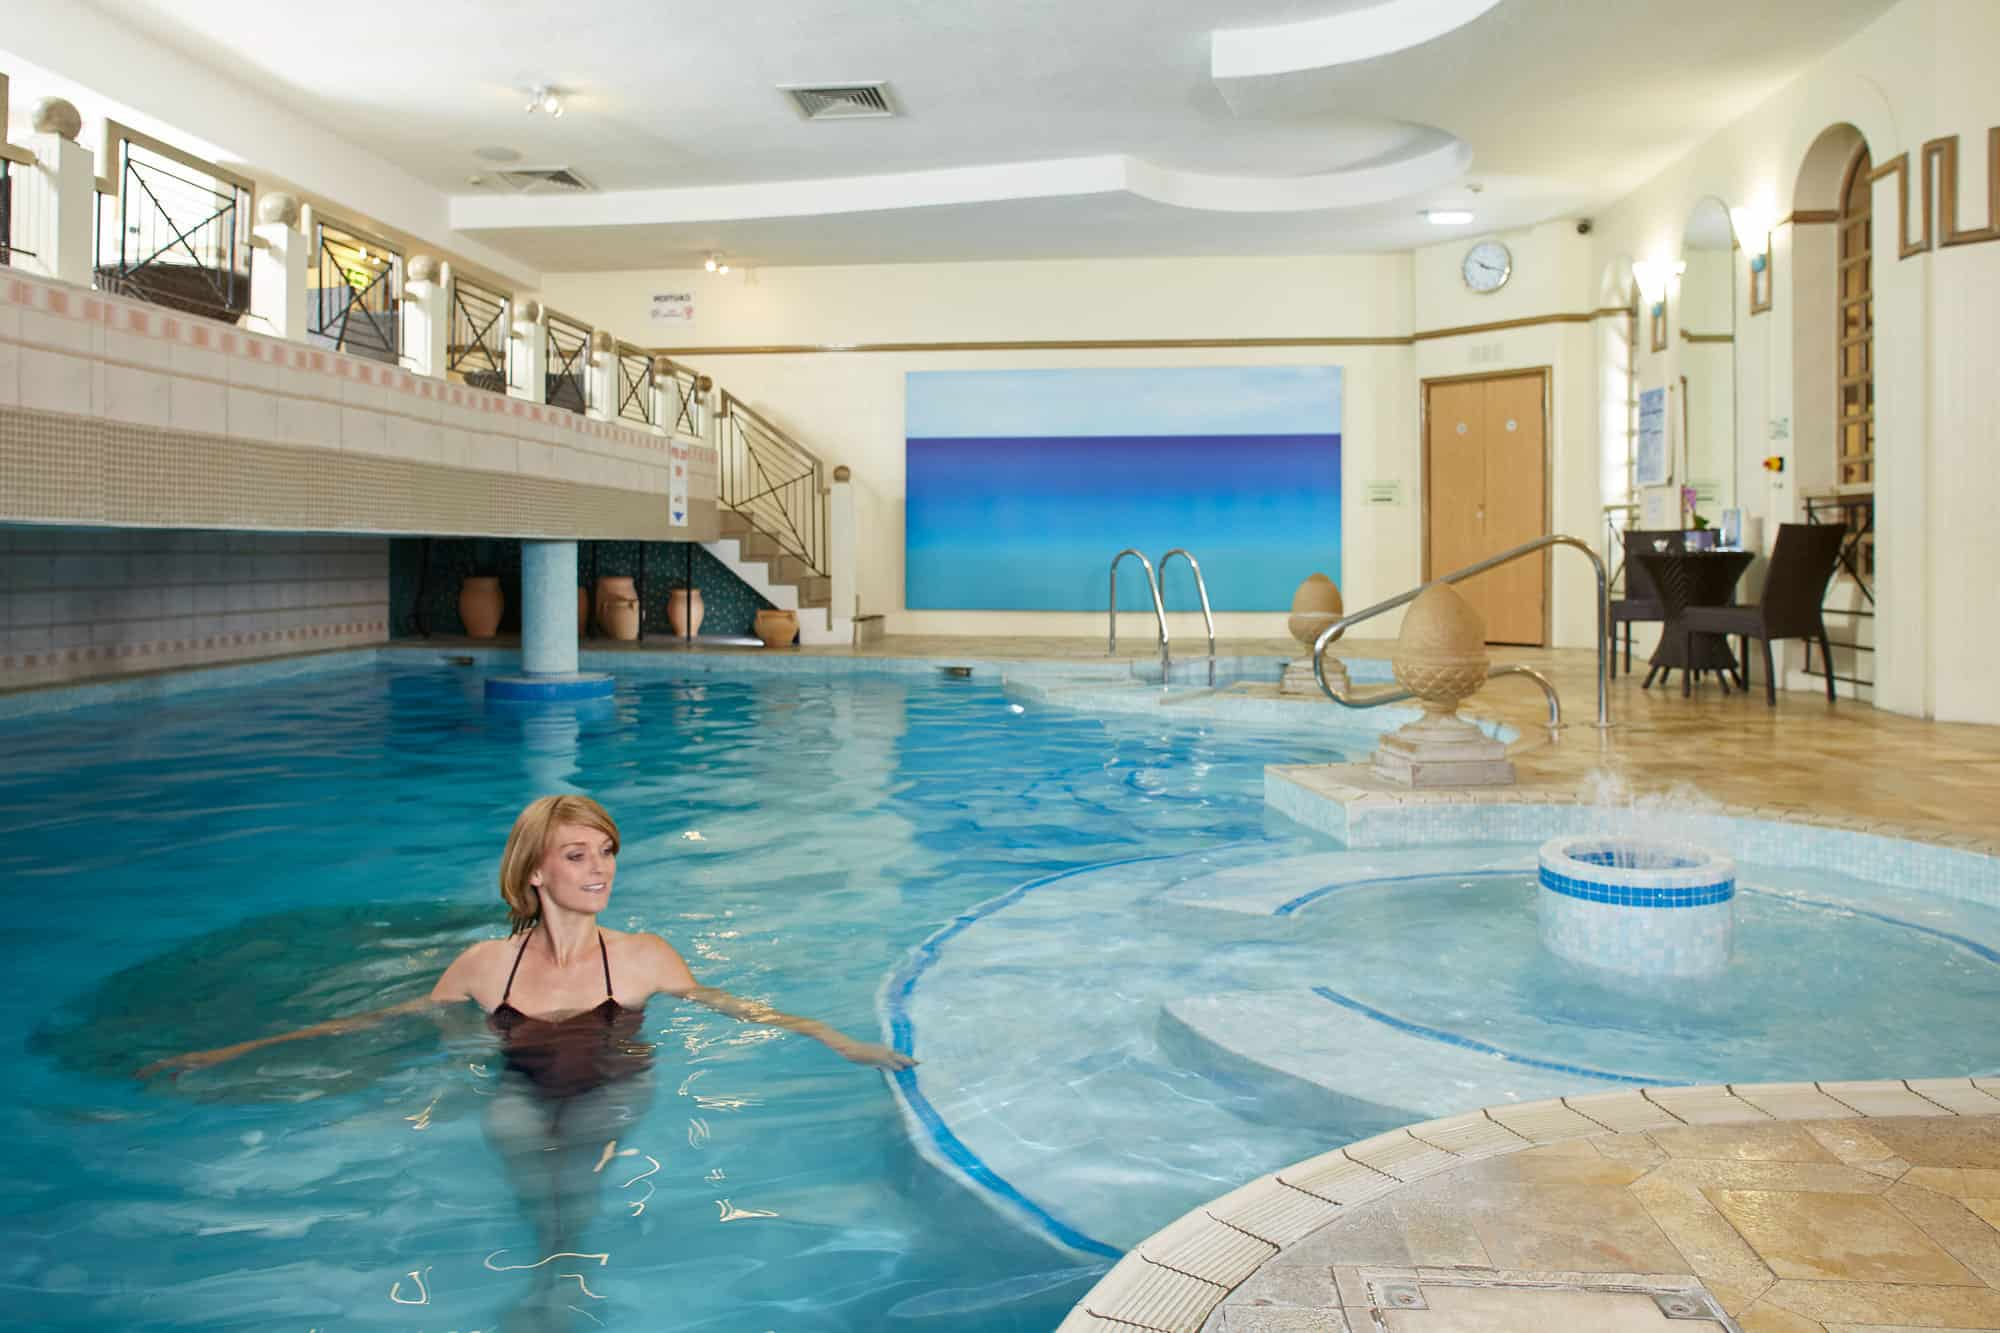 Jacuzzi With Swimming Pool Aquilla Spa Health And Fitness Centre In Knightsbridge London